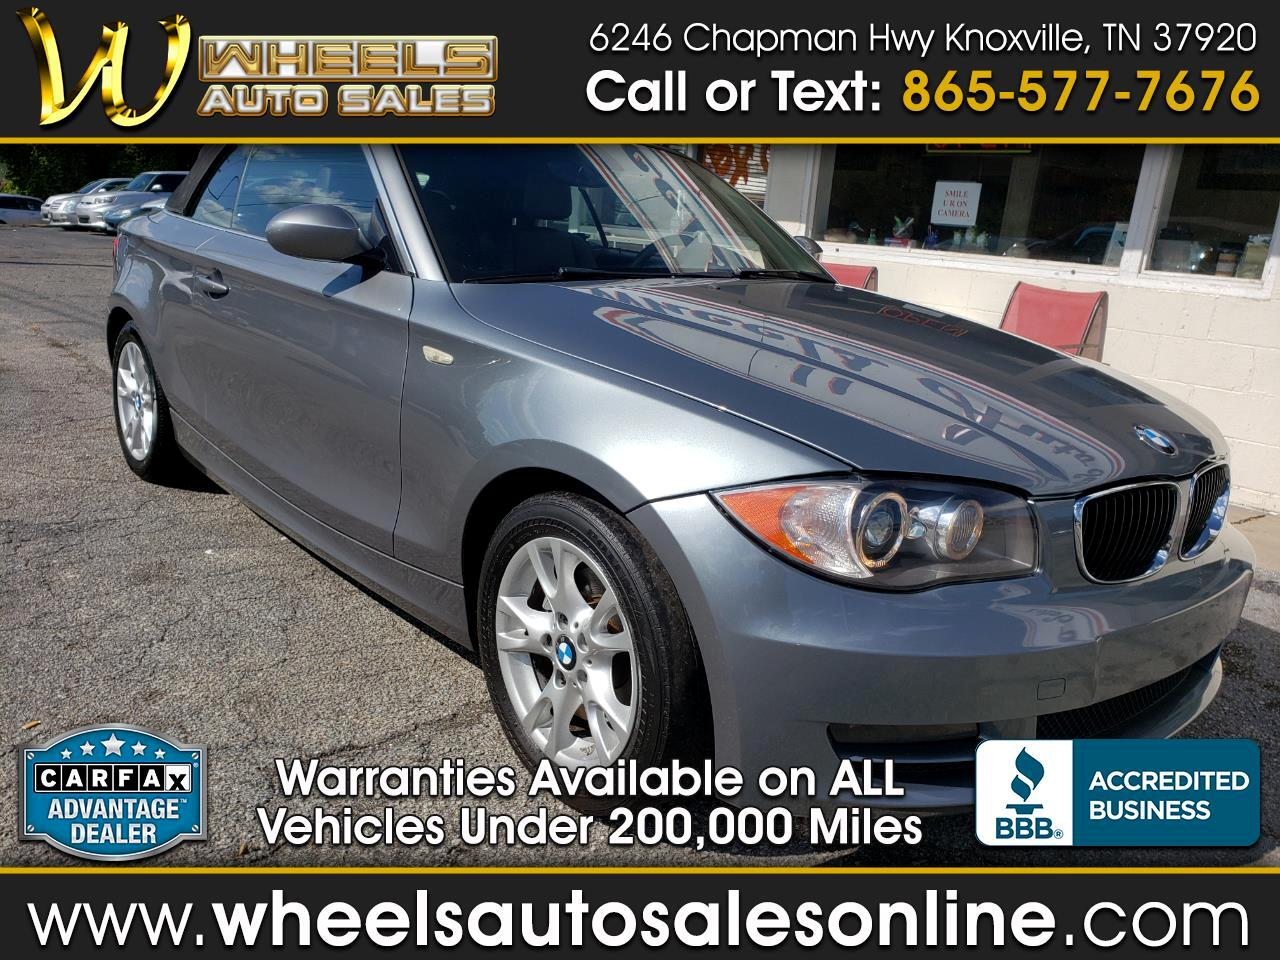 2009 BMW 1 Series 2dr Conv 128i